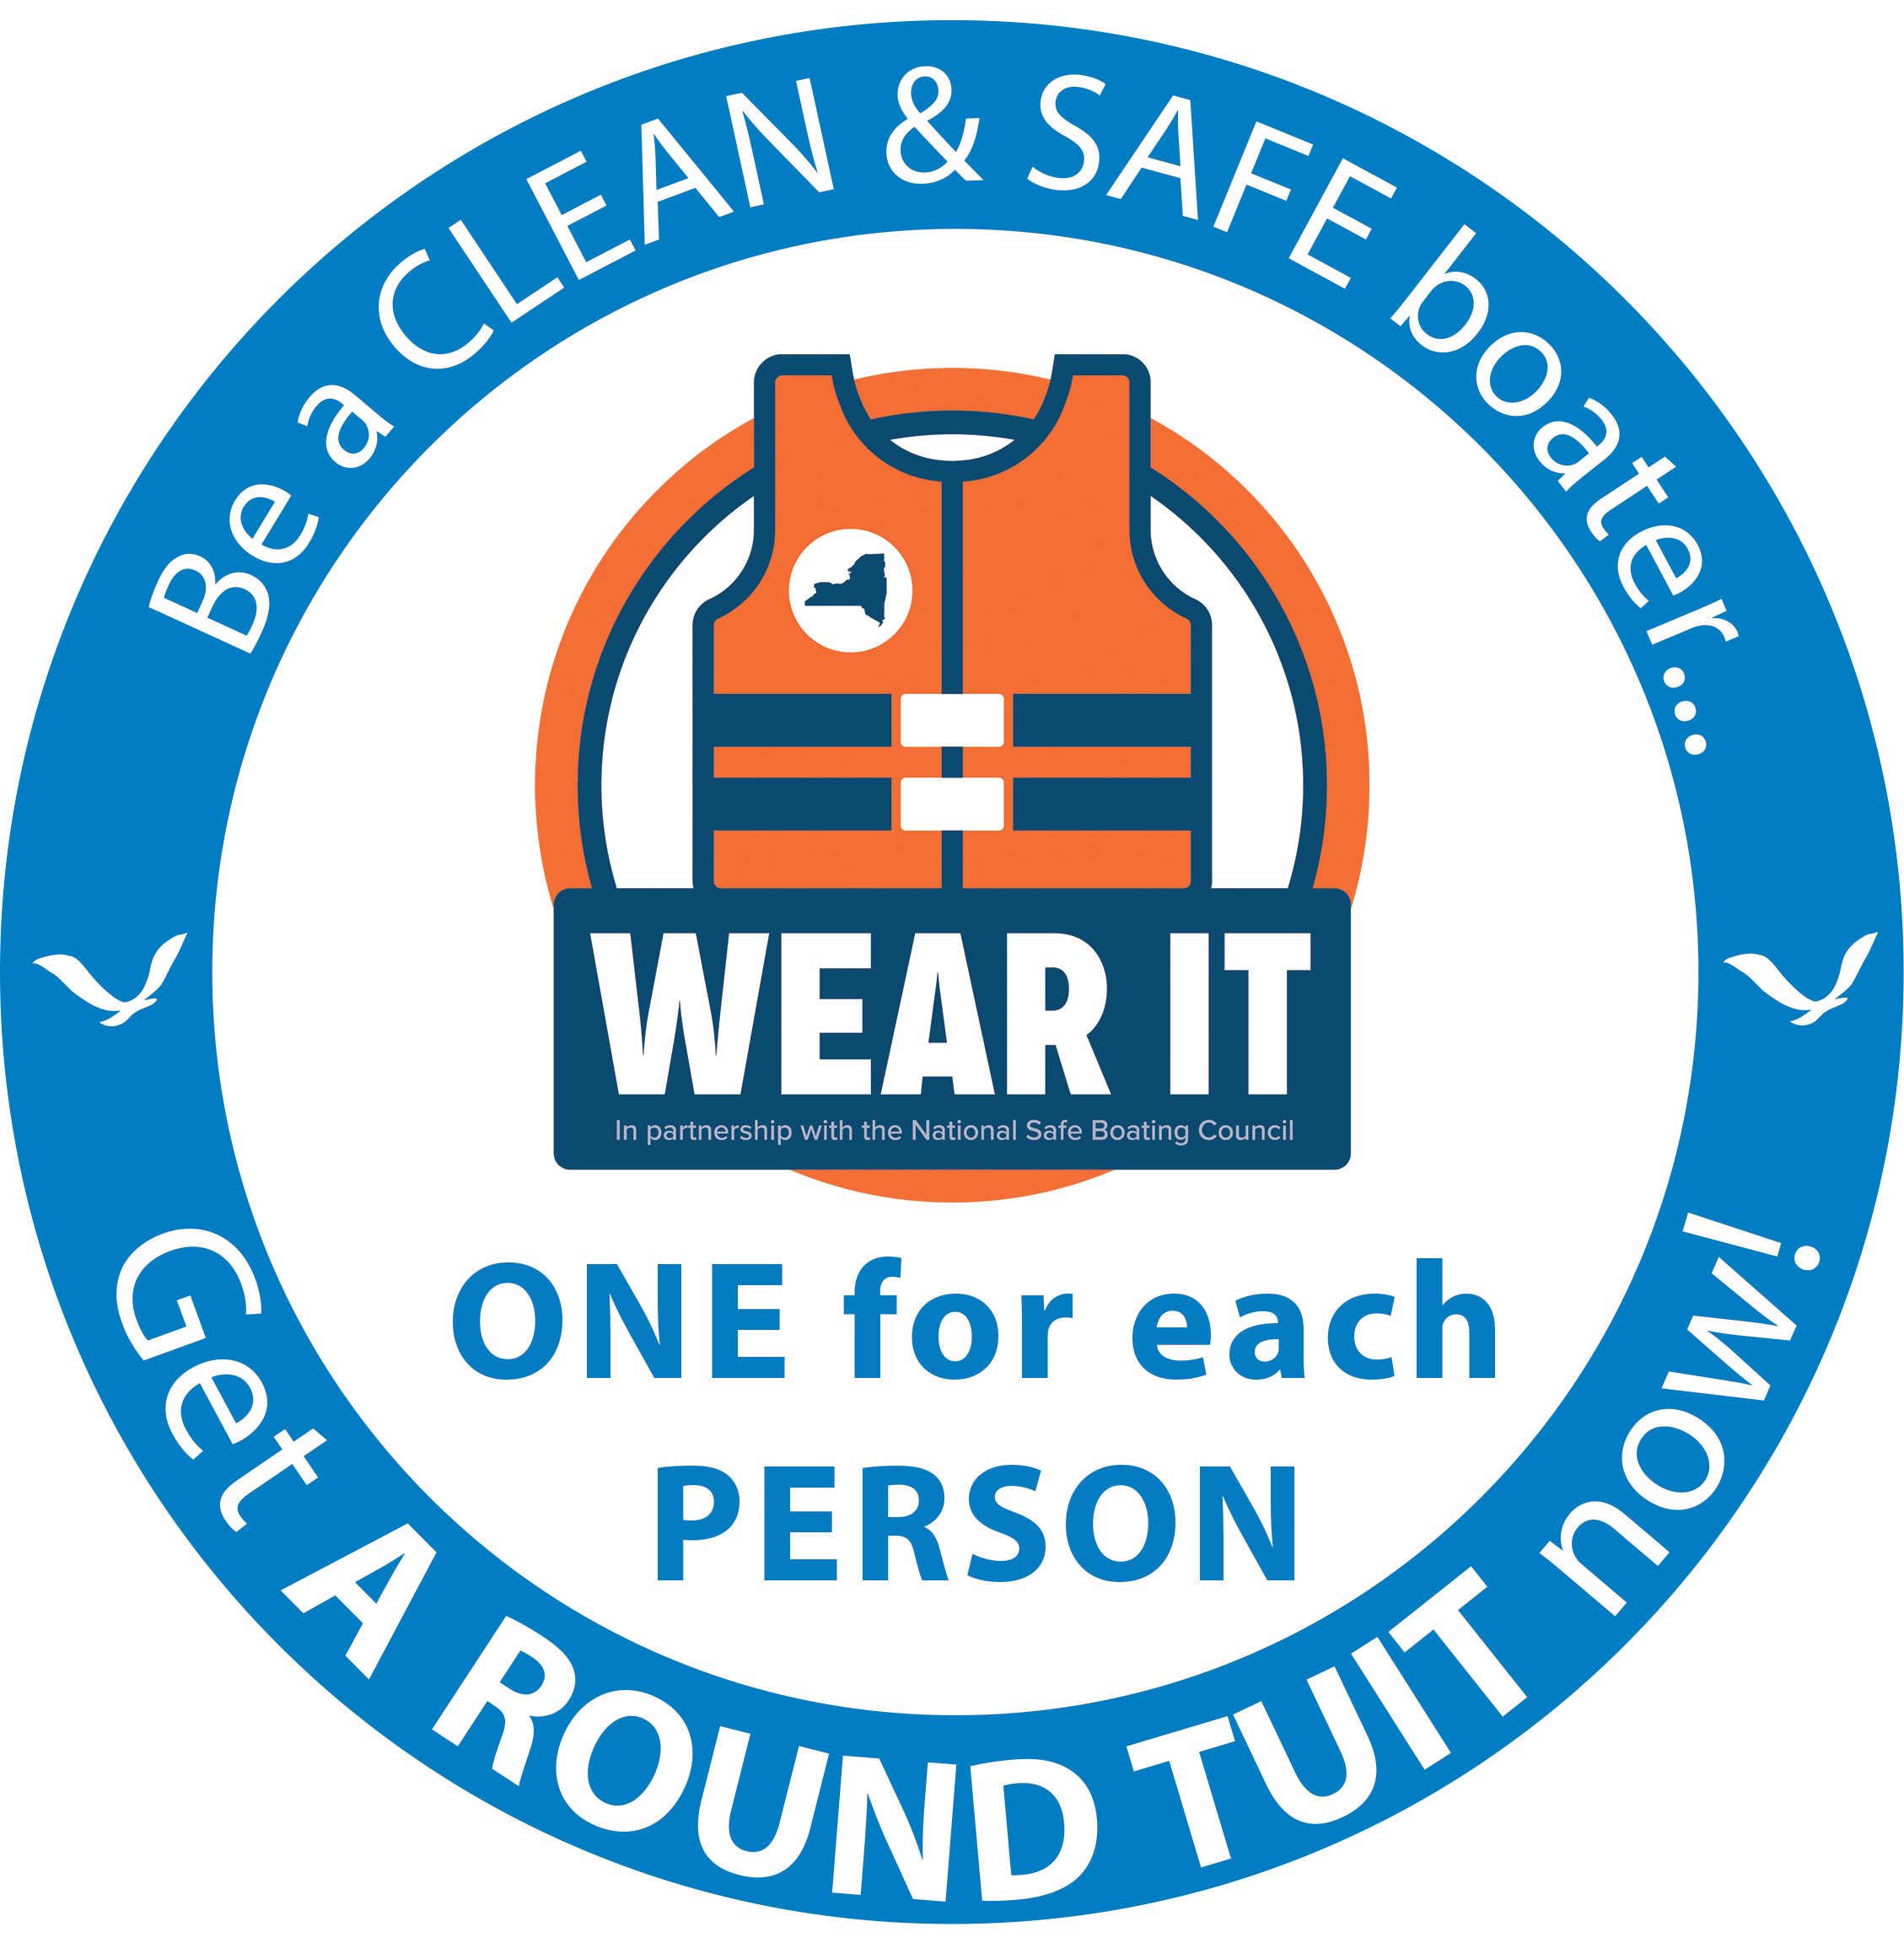 New York Sea Grant reminds boaters to wear a PFD while on the water this autumn.